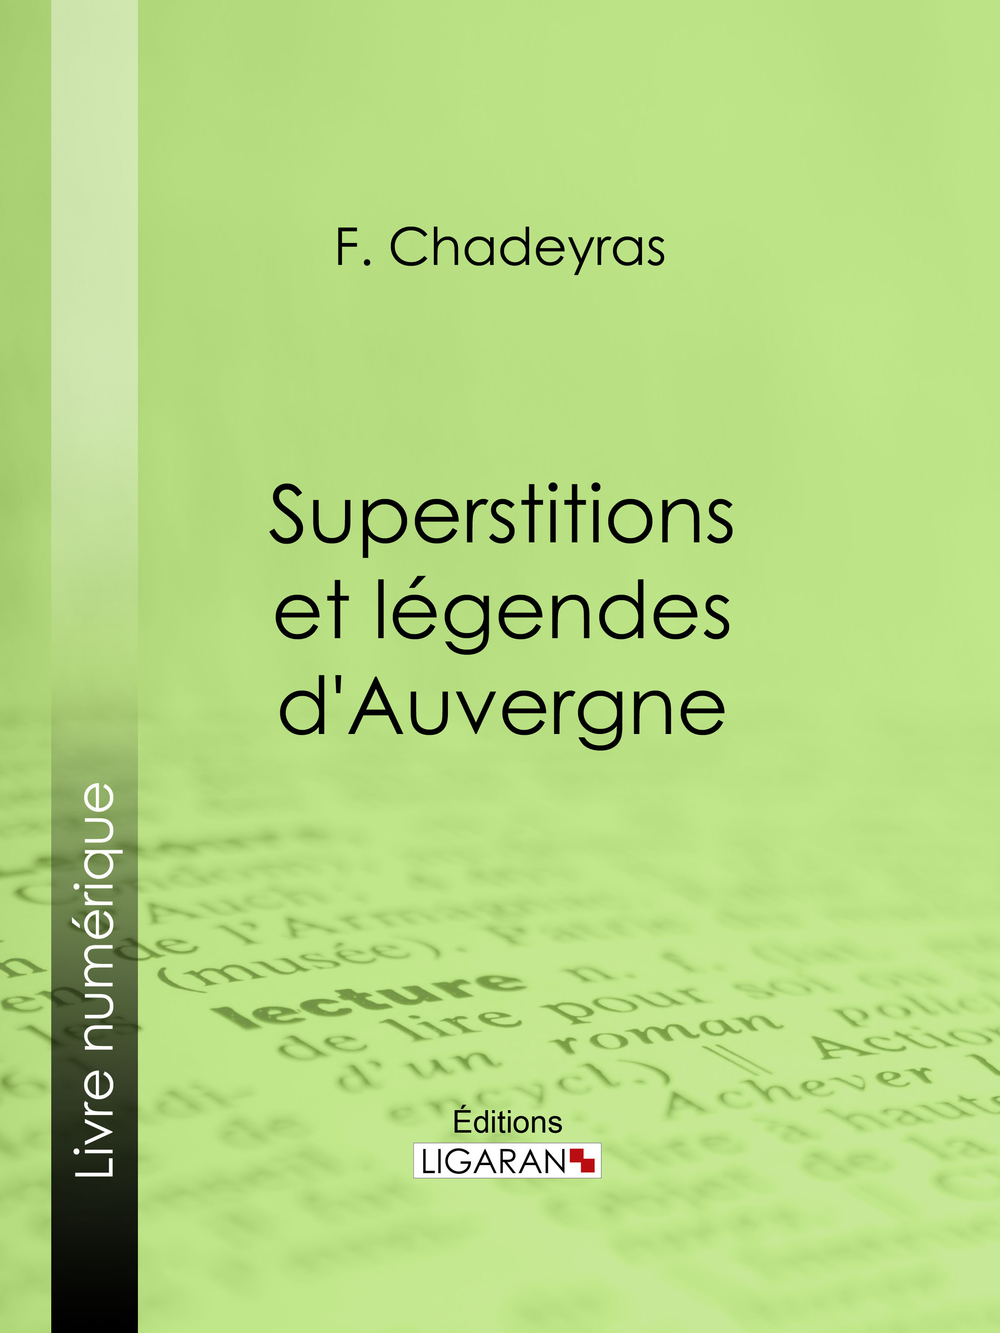 Superstitions et légendes d'Auvergne